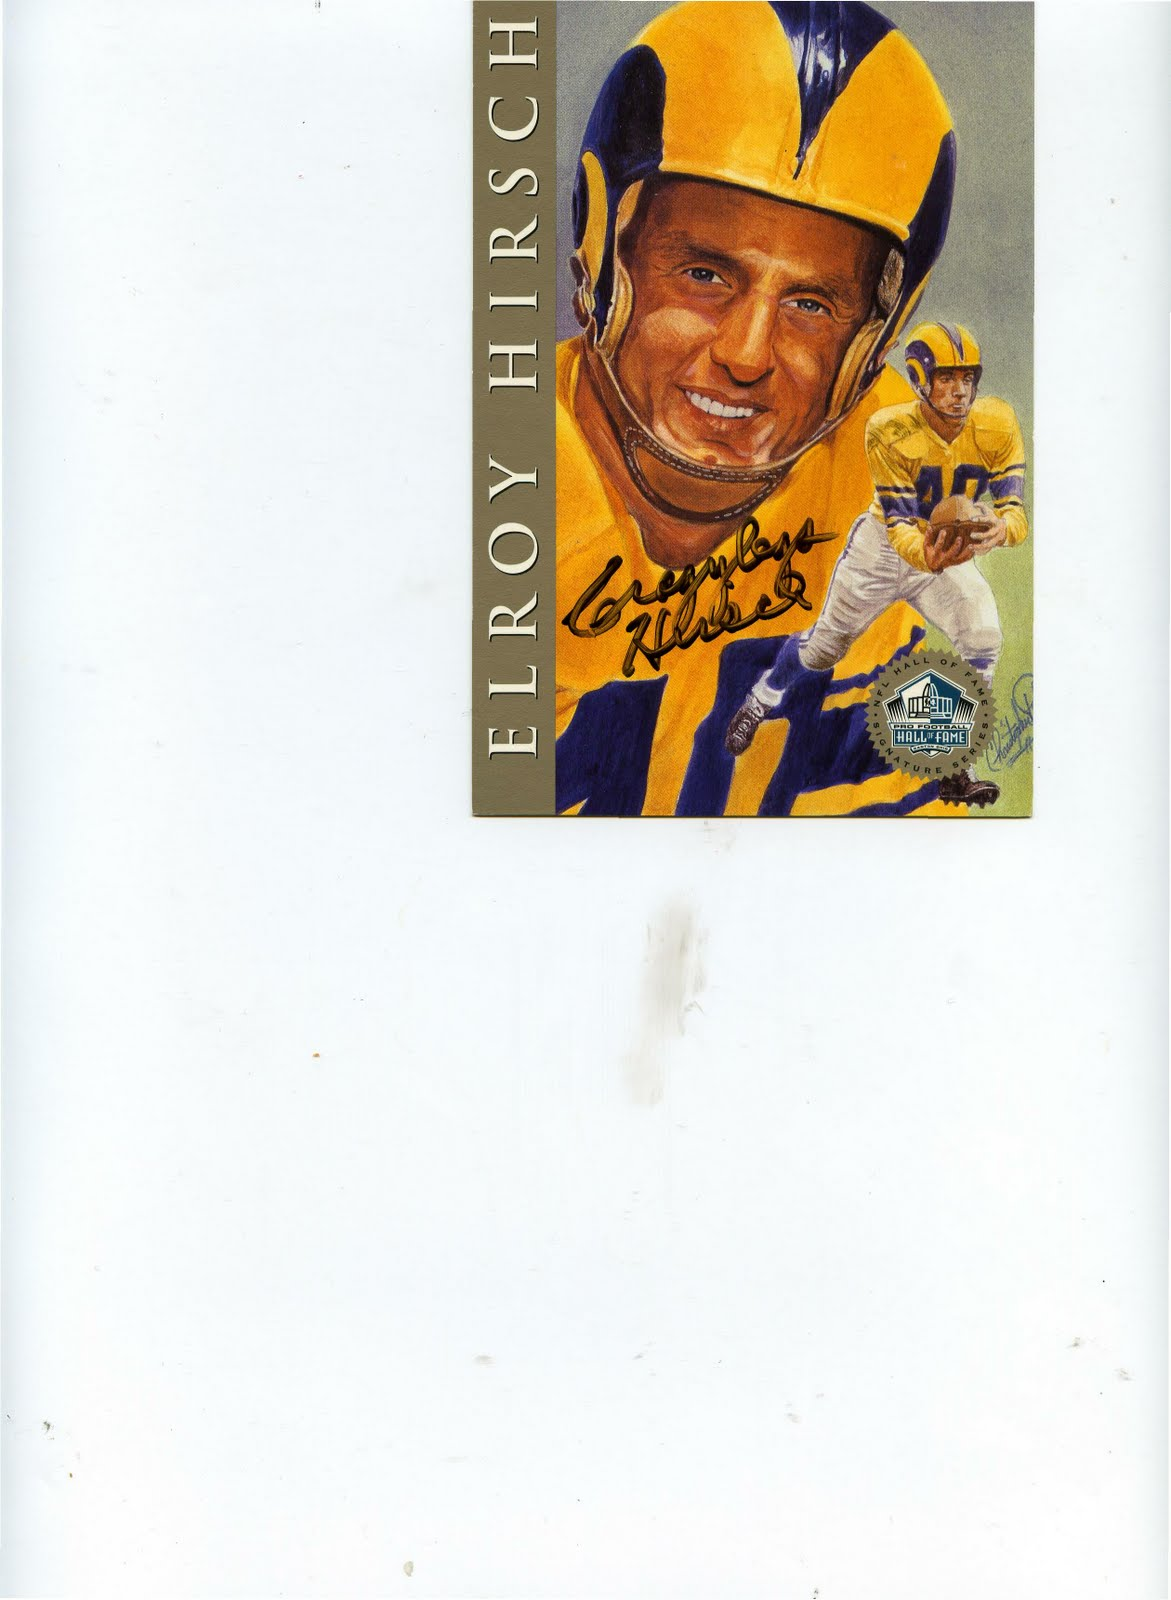 Cheap Card Collecting Awesome Ebay Pickup Autographed 8